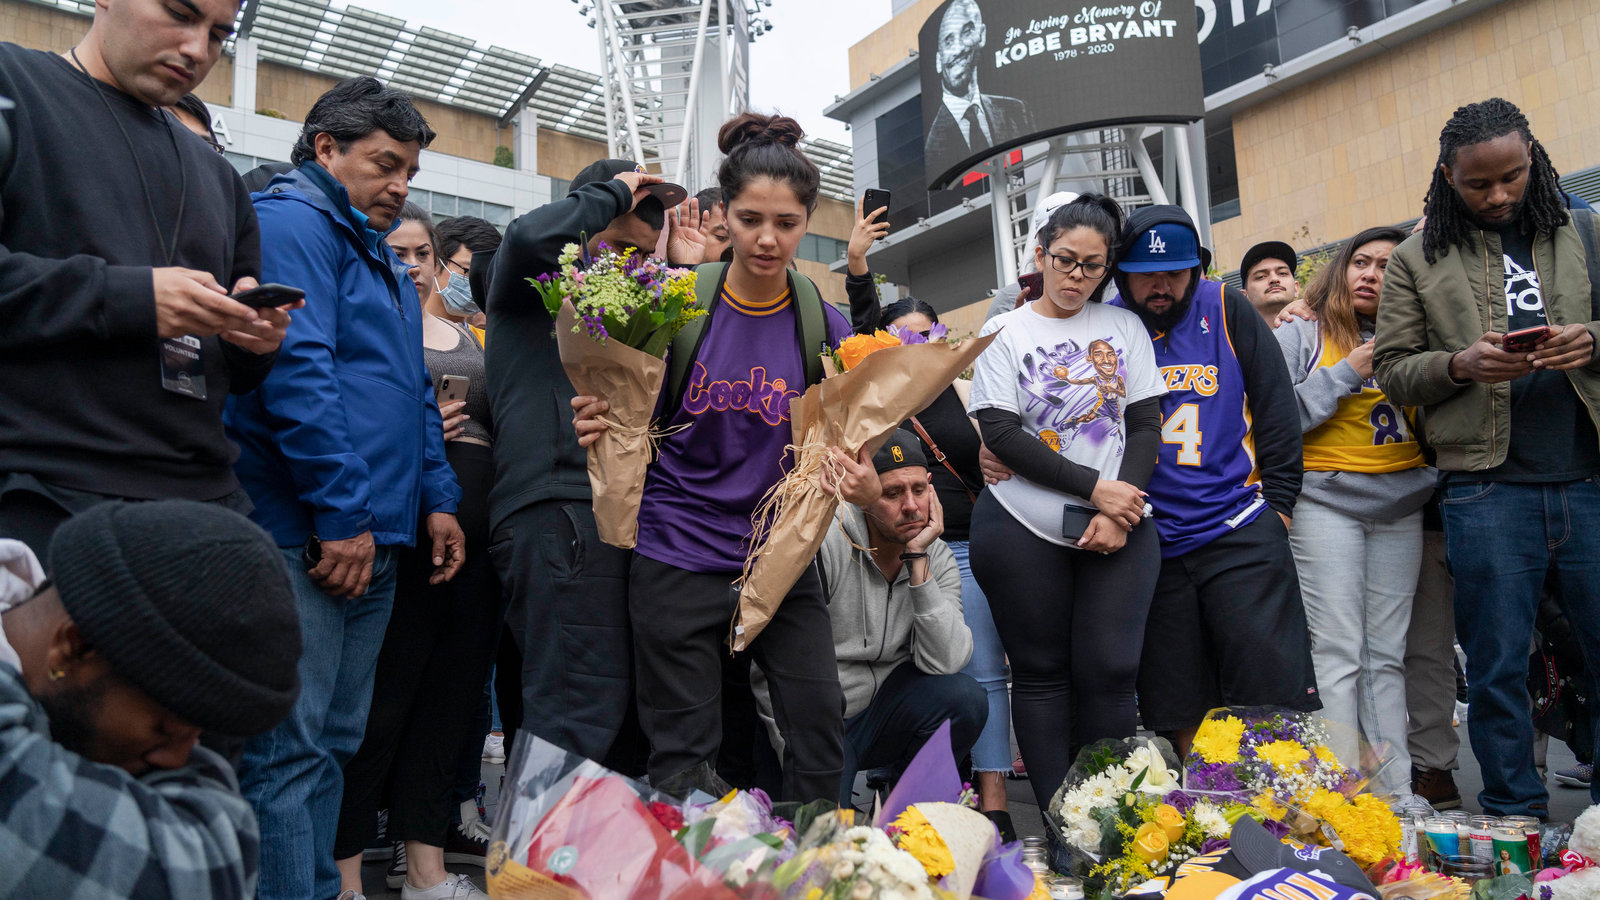 Kobe Bryant Fans in Los Angeles Pay Tribute   The New York Times 1600x900